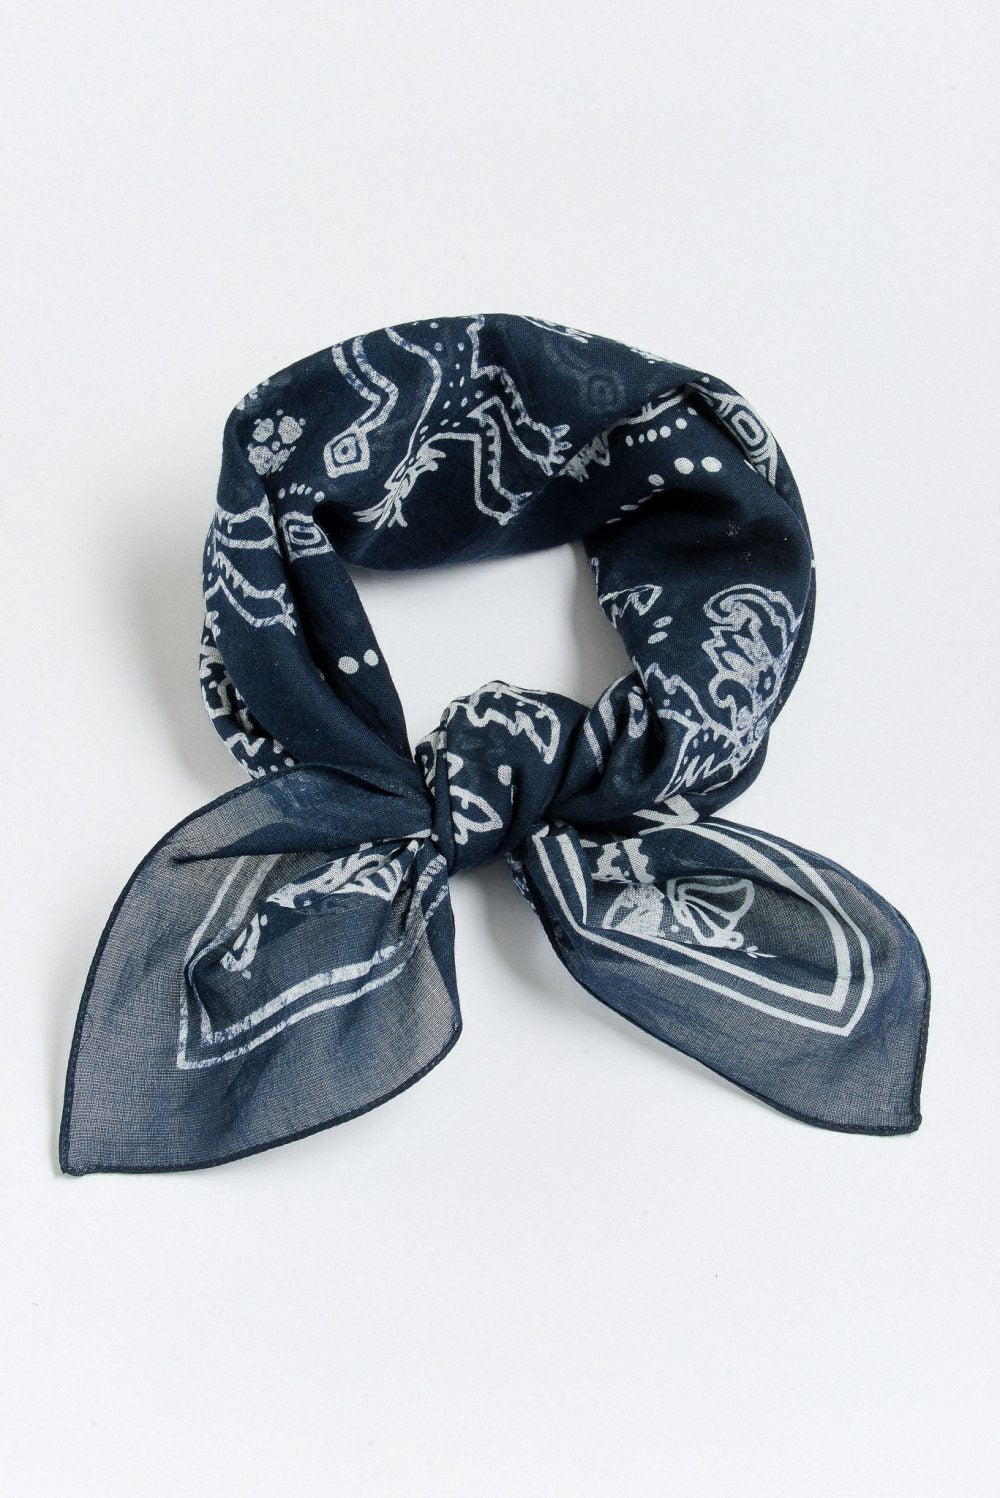 A-Kind-of-Guise-Boliva-Bandana